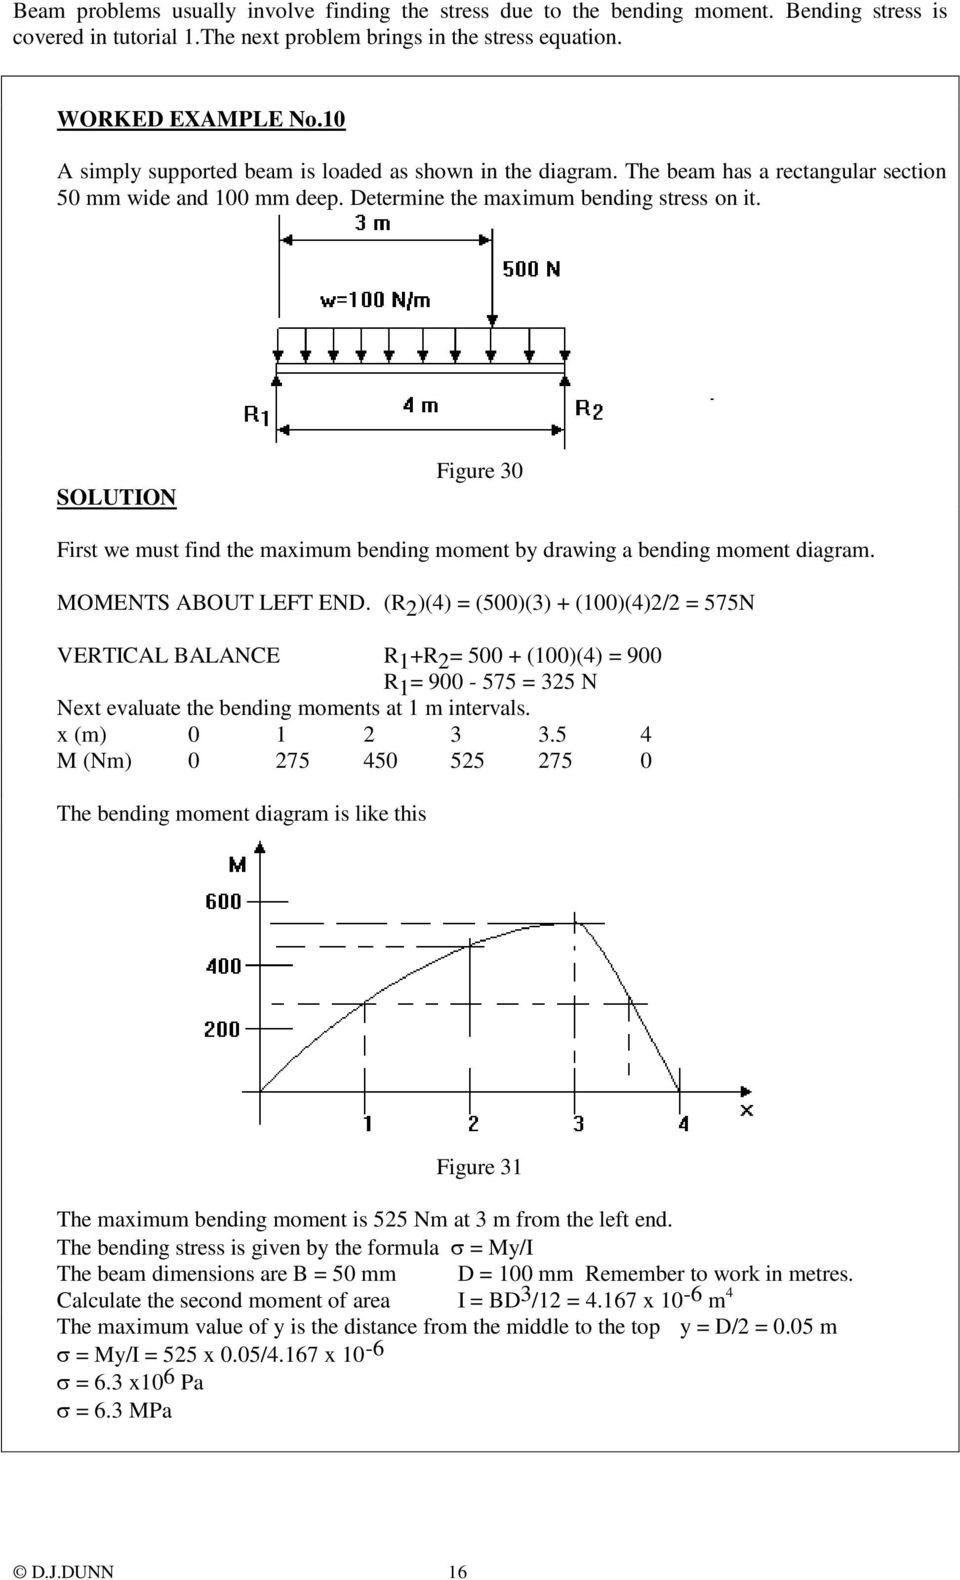 MECHANICS OF SOLIDS - BEAMS TUTORIAL 2 SHEAR FORCE AND